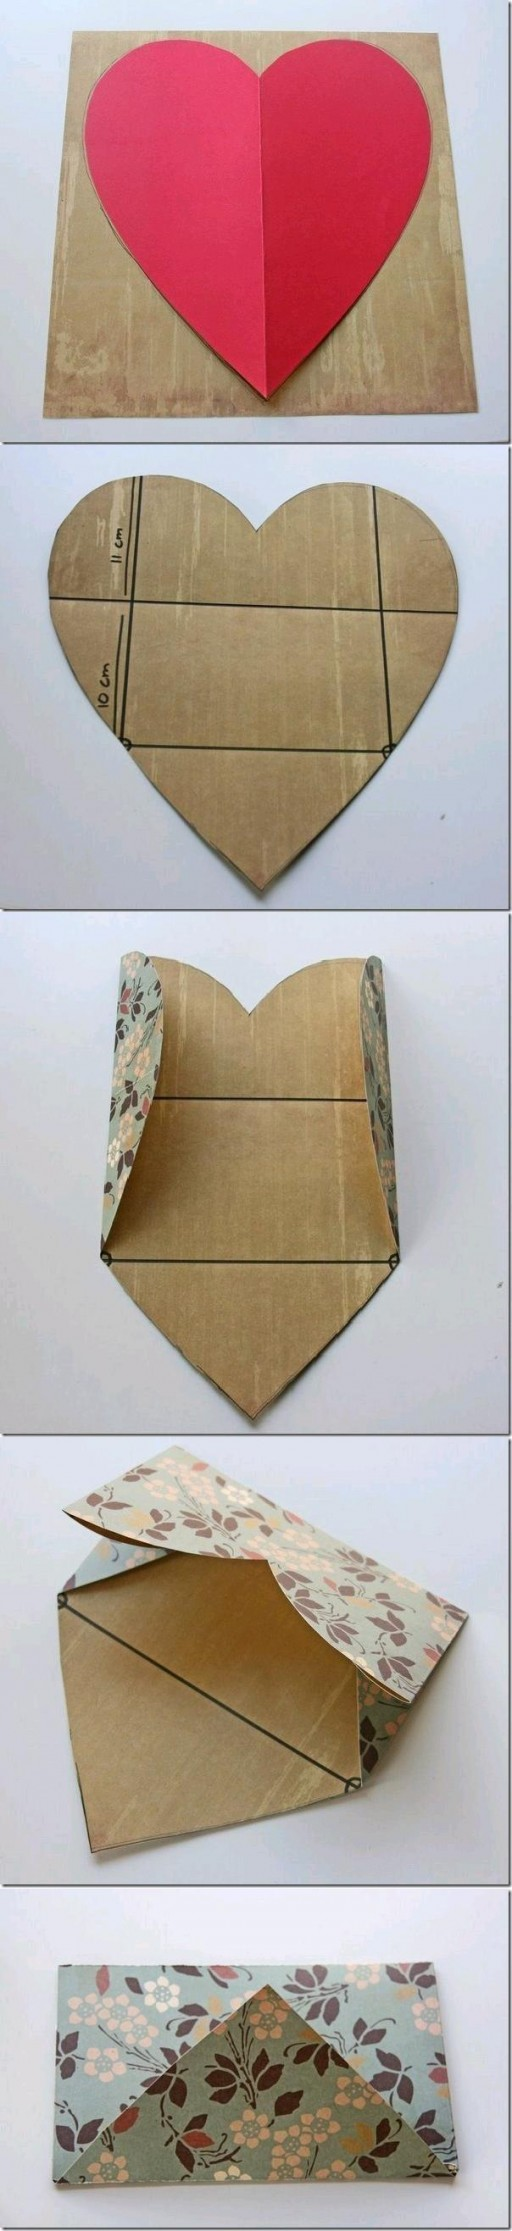 How to fold a cute DIY envelope from a heart step by step tutorial instructions (1)